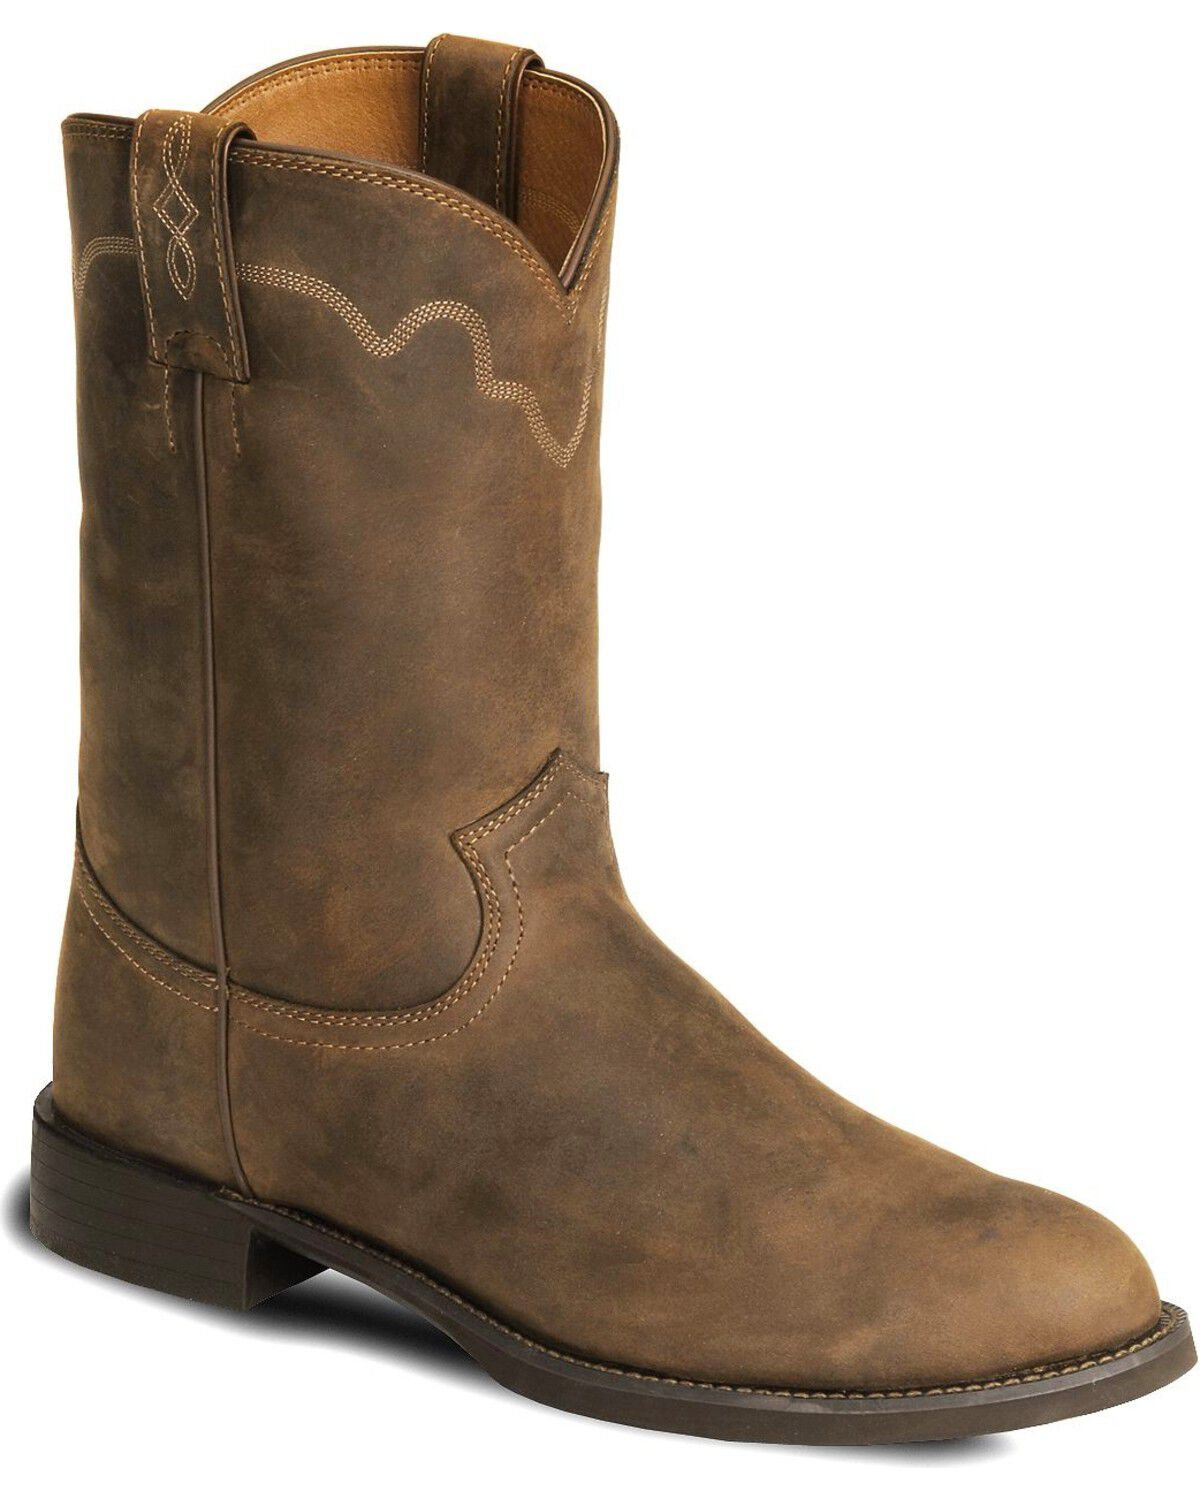 Men's Justin Casual Boots - Sheplers